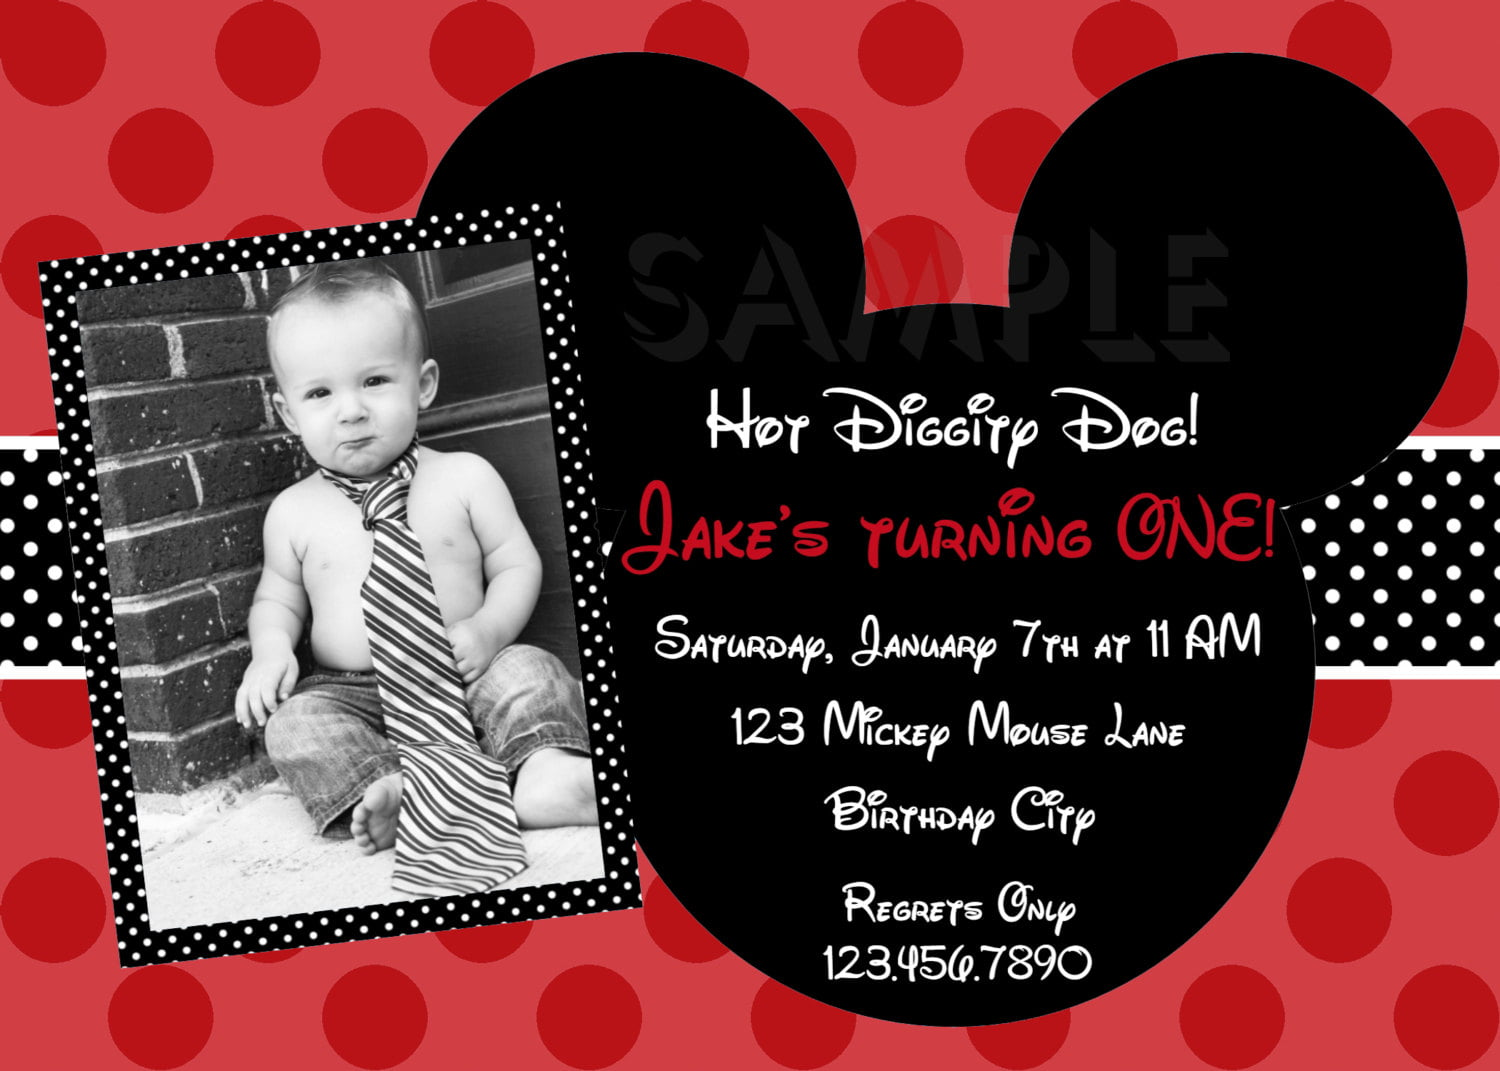 1st mickey mouse birthday invitations drevio invitations design black and white photograph mickey mouse birthday invitations cool mickey